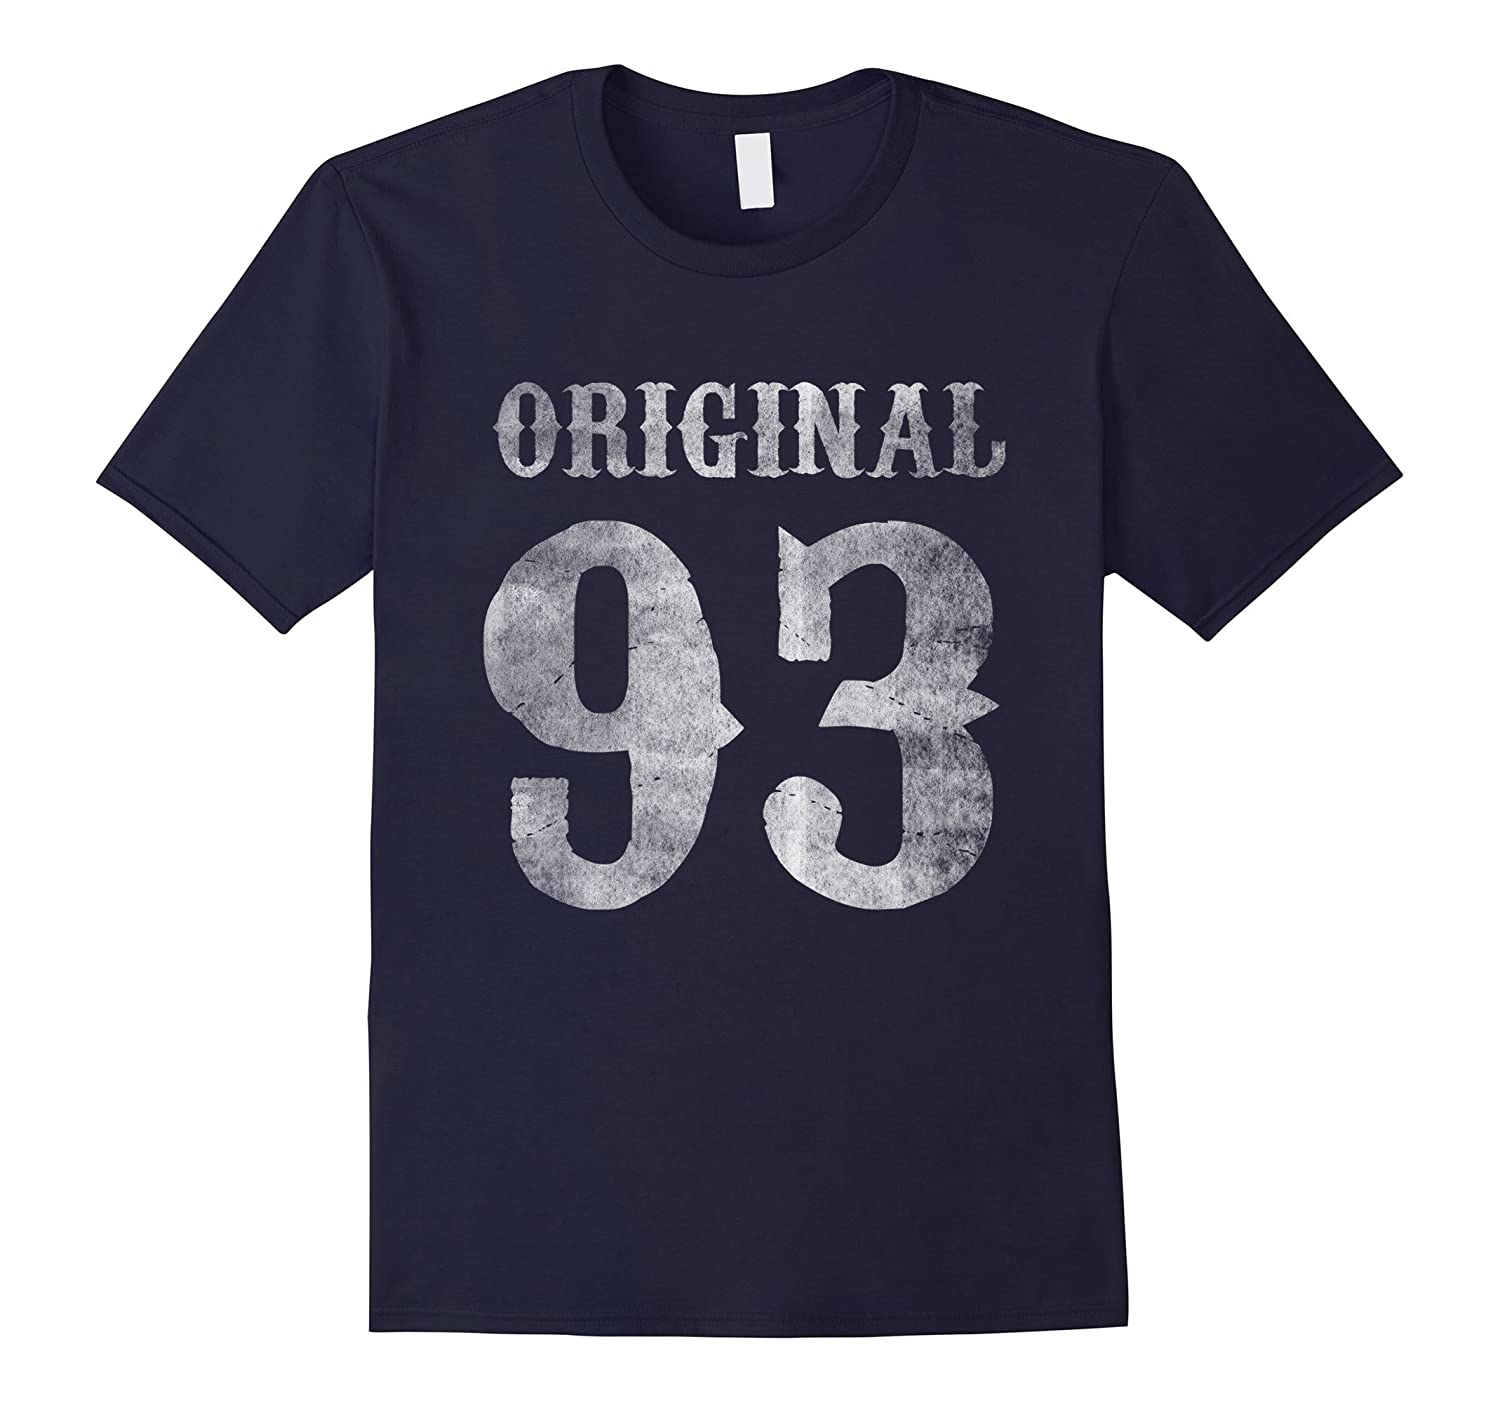 1993 Birthday Vintage T-shirt 93th Birthday Men Women kids-TH